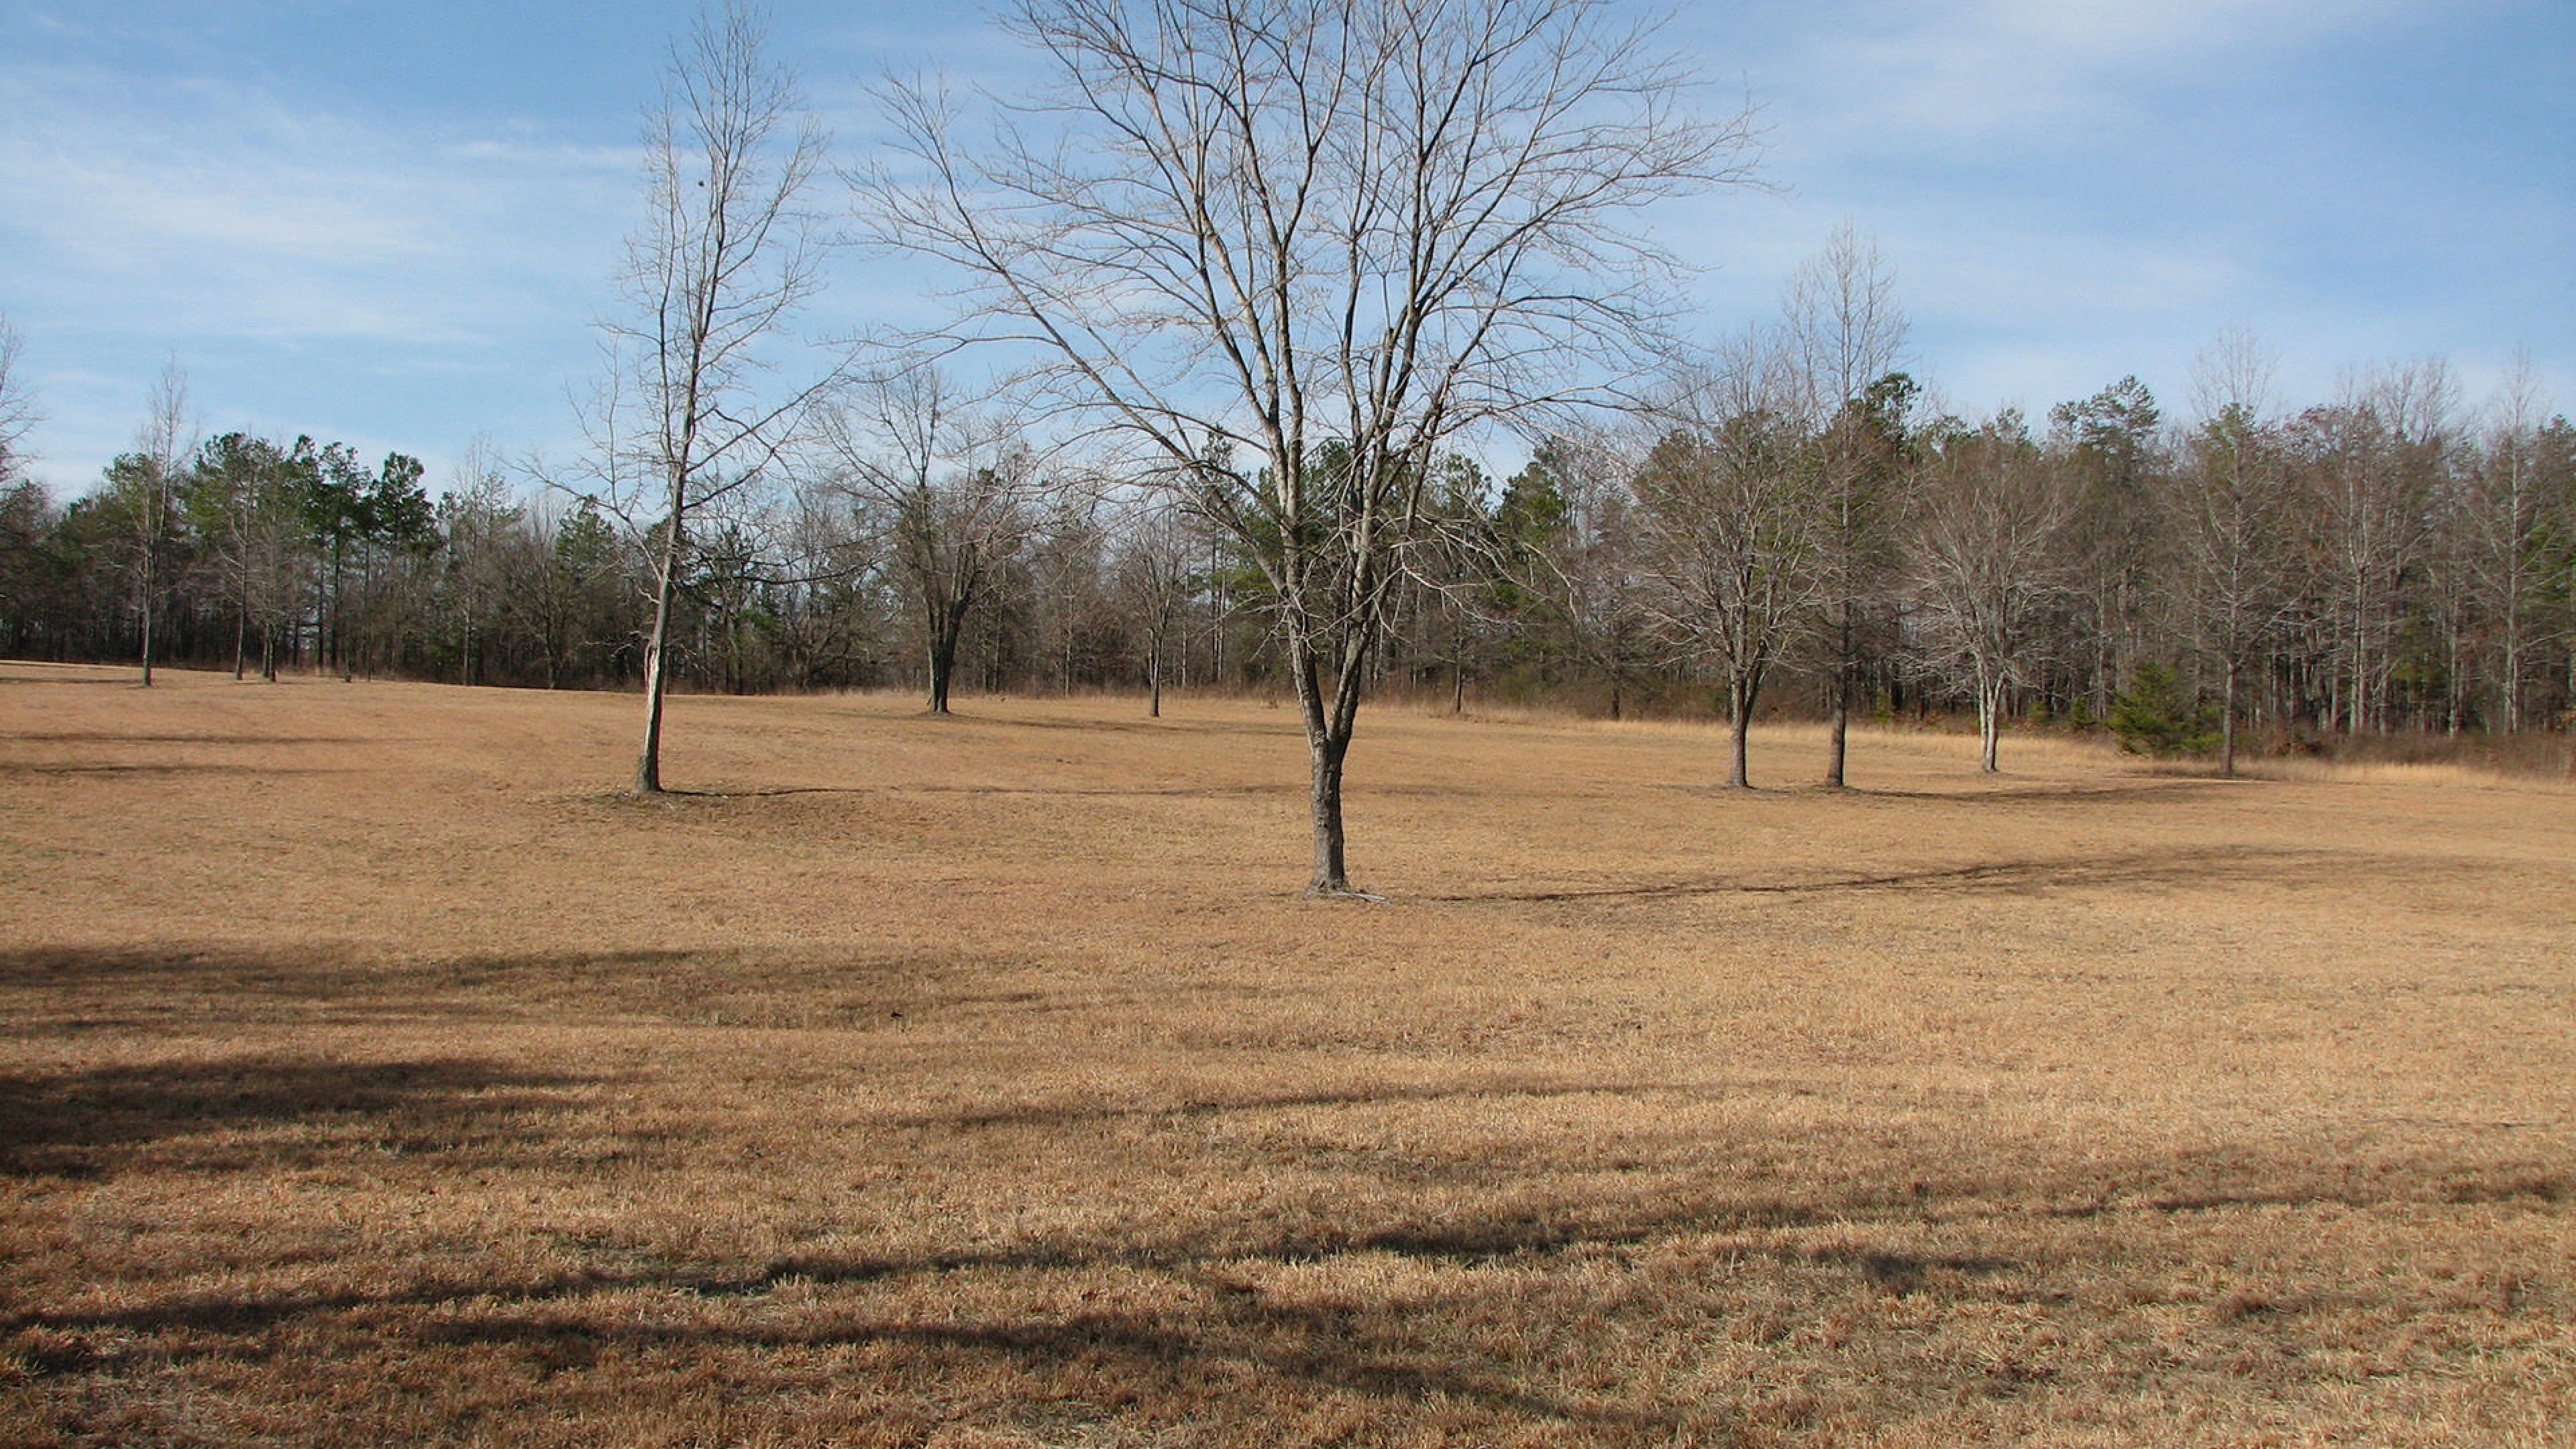 Field with trees